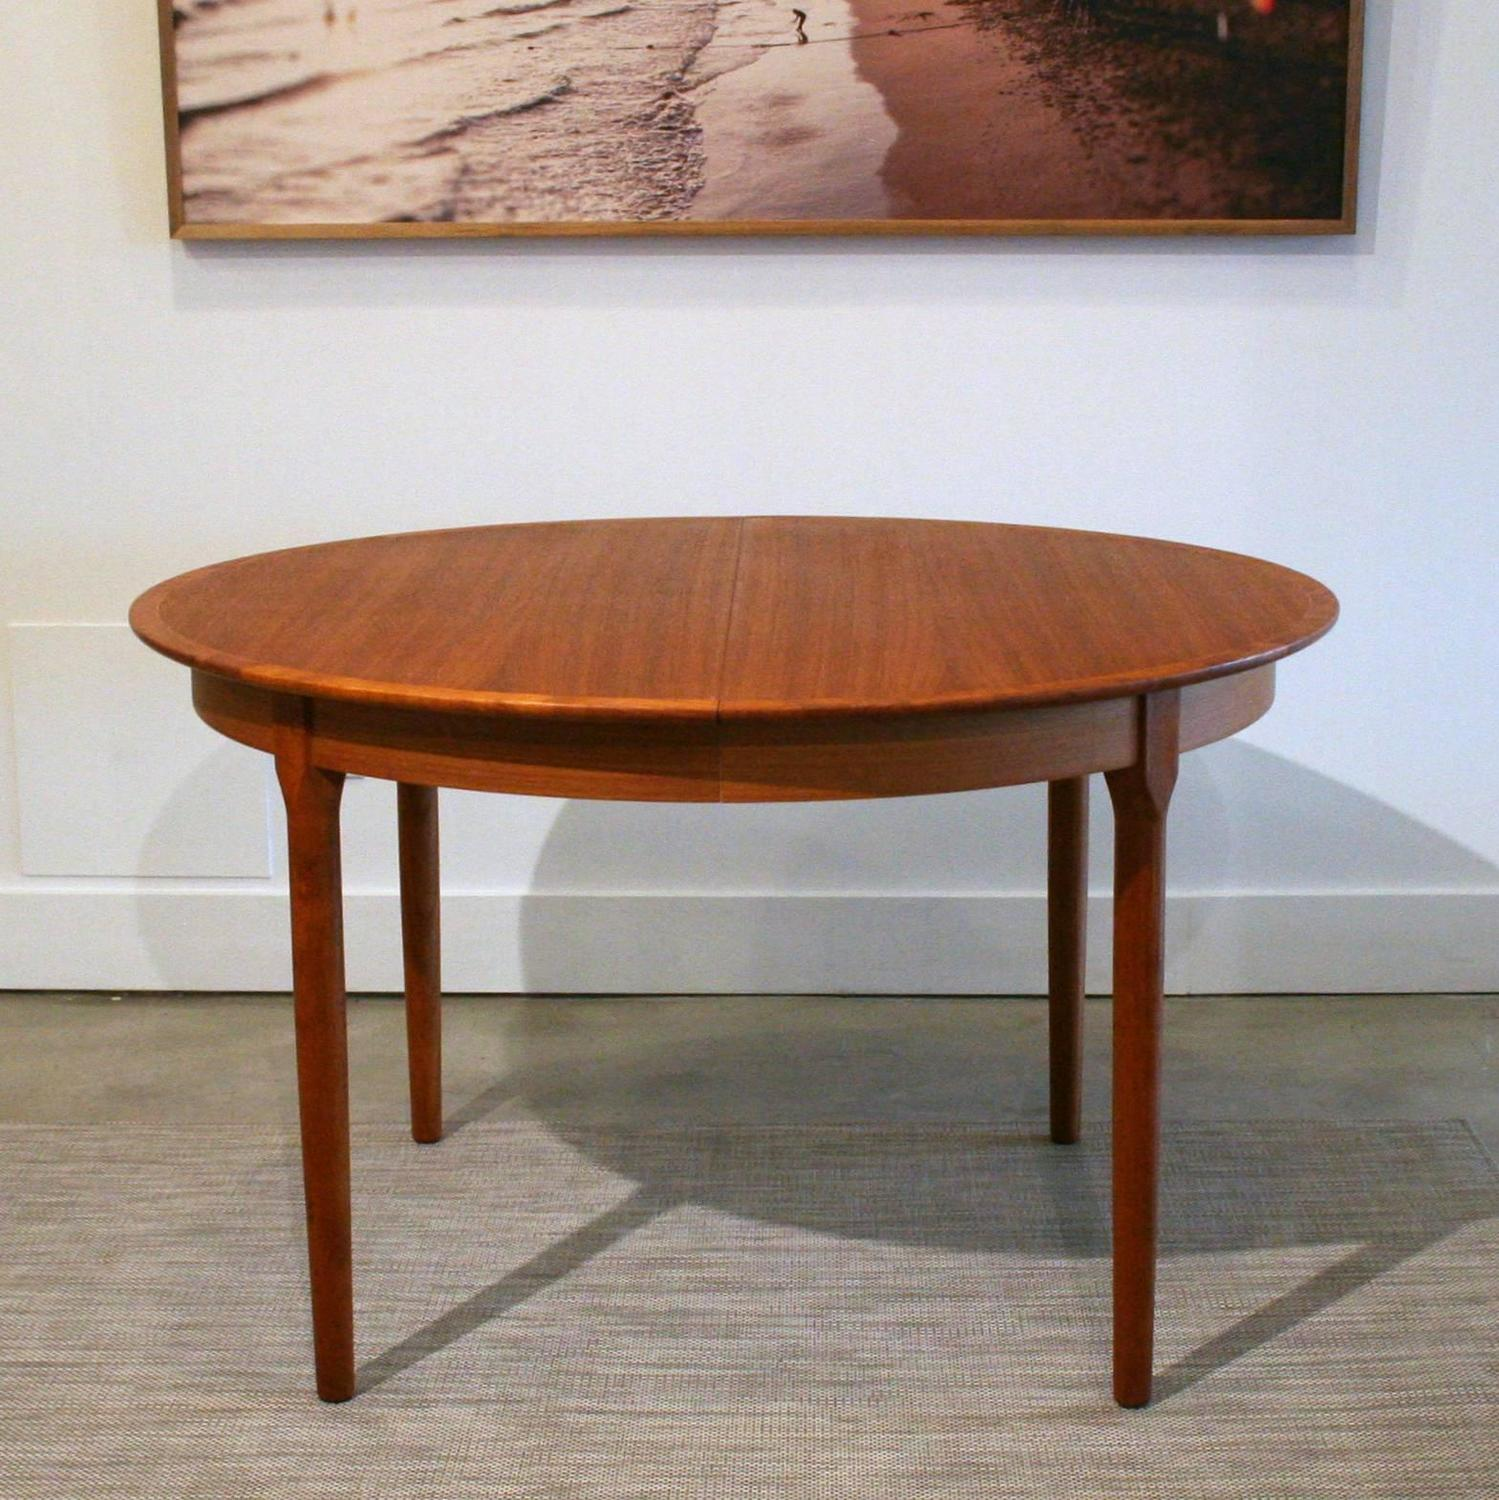 Vintage Danish Teak Round Dining Table at 1stdibs : IMG3543z from www.1stdibs.com size 1499 x 1500 jpeg 245kB